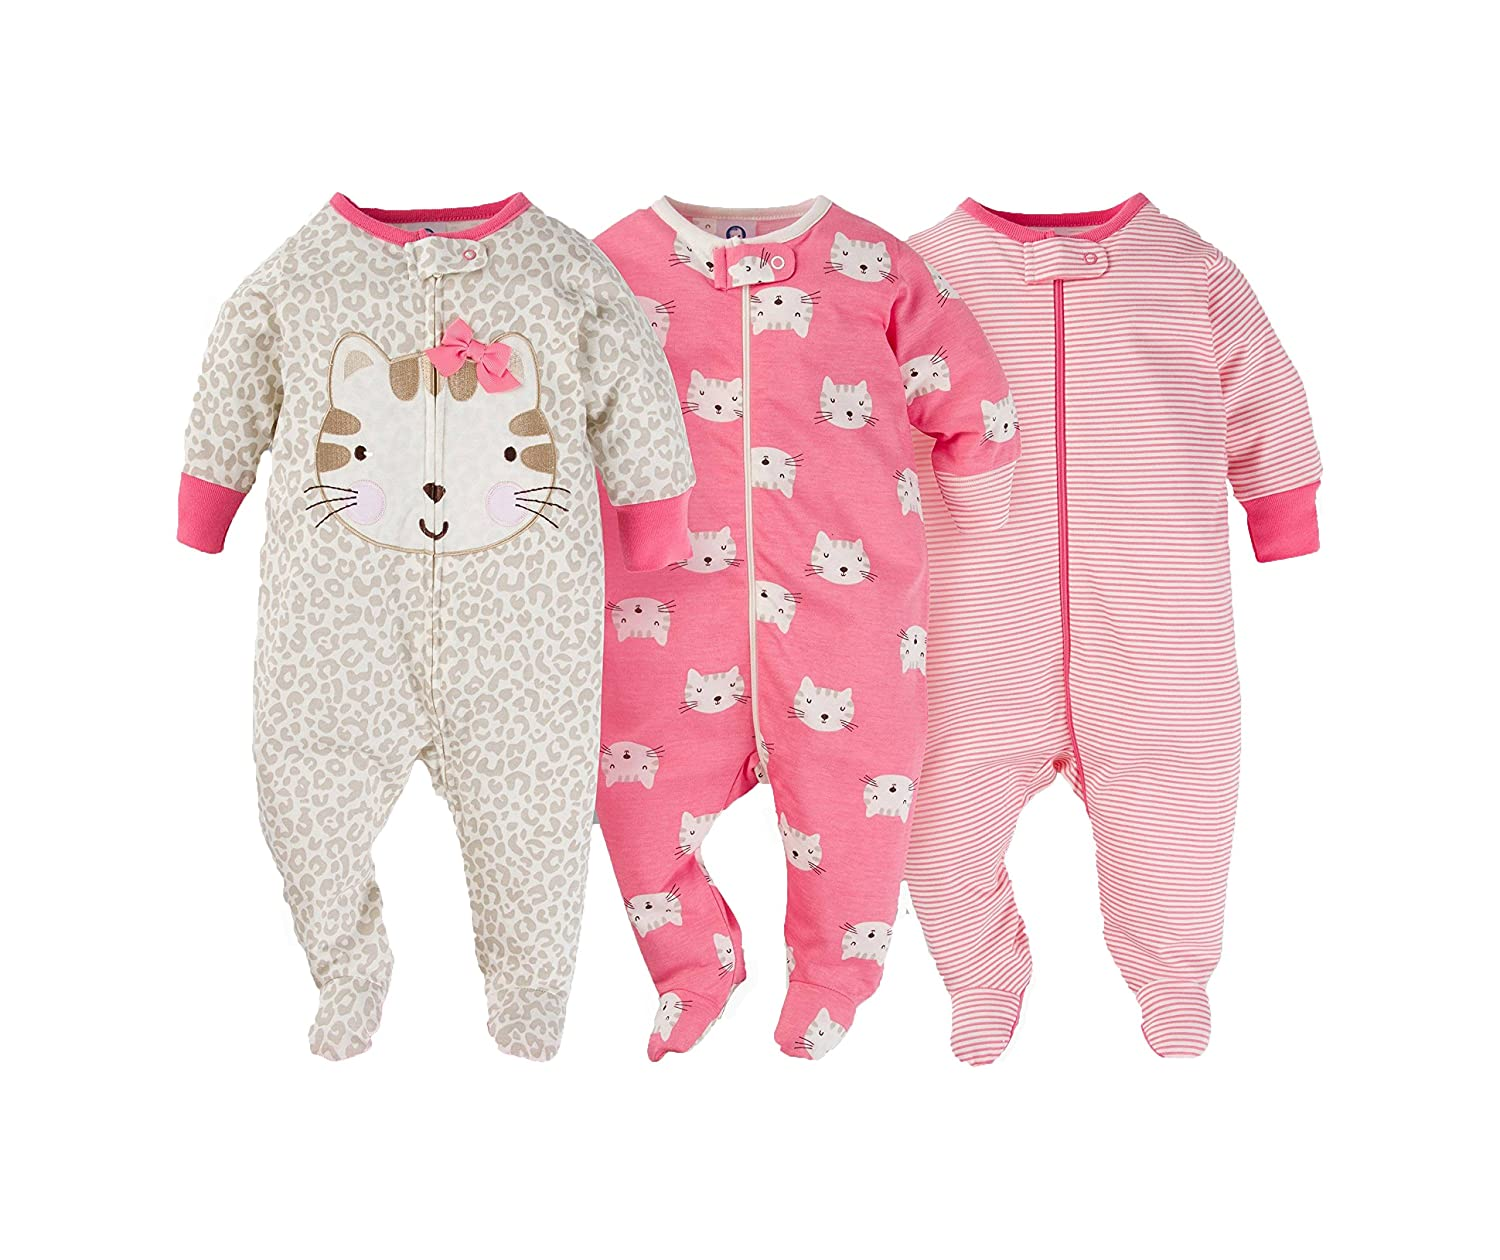 e22533fed Amazon.com  Gerber Onesies Baby Girl Sleep N Play Sleepers 3 Pack ...